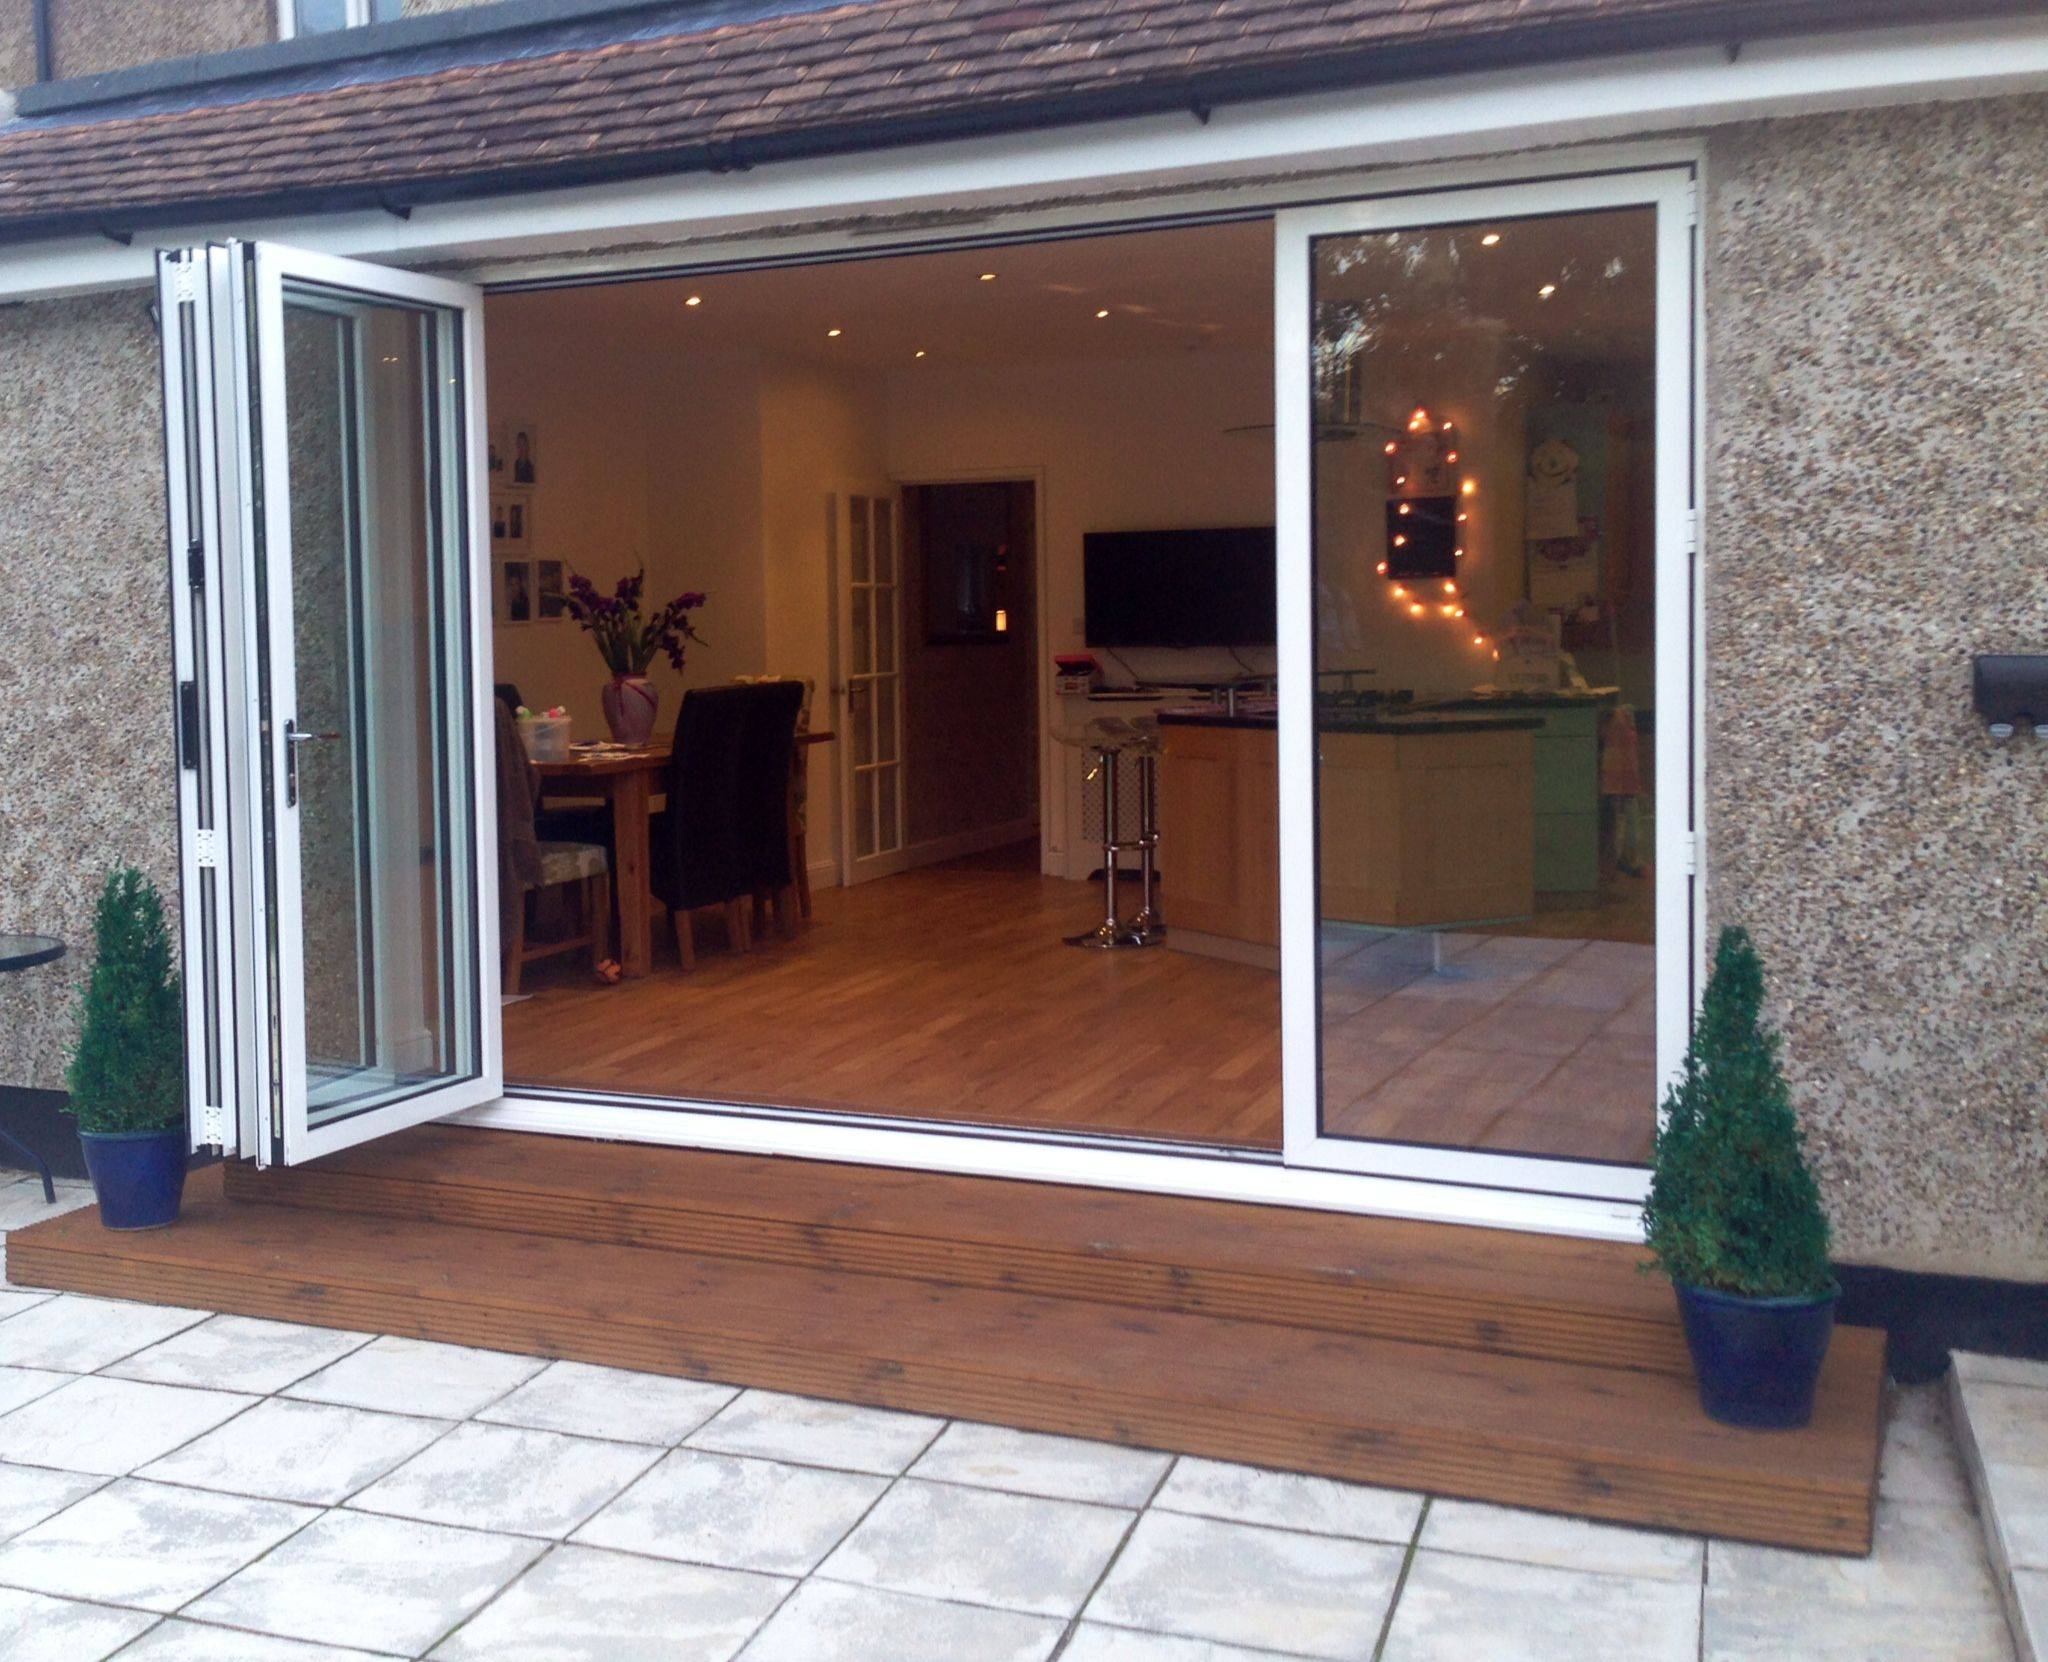 Stunning Aluminium Bi Folding Doors From Bi Folding Door Prices Design Price And Order Instantly On Bifold Doors Folding Doors Sliding Door Window Treatments